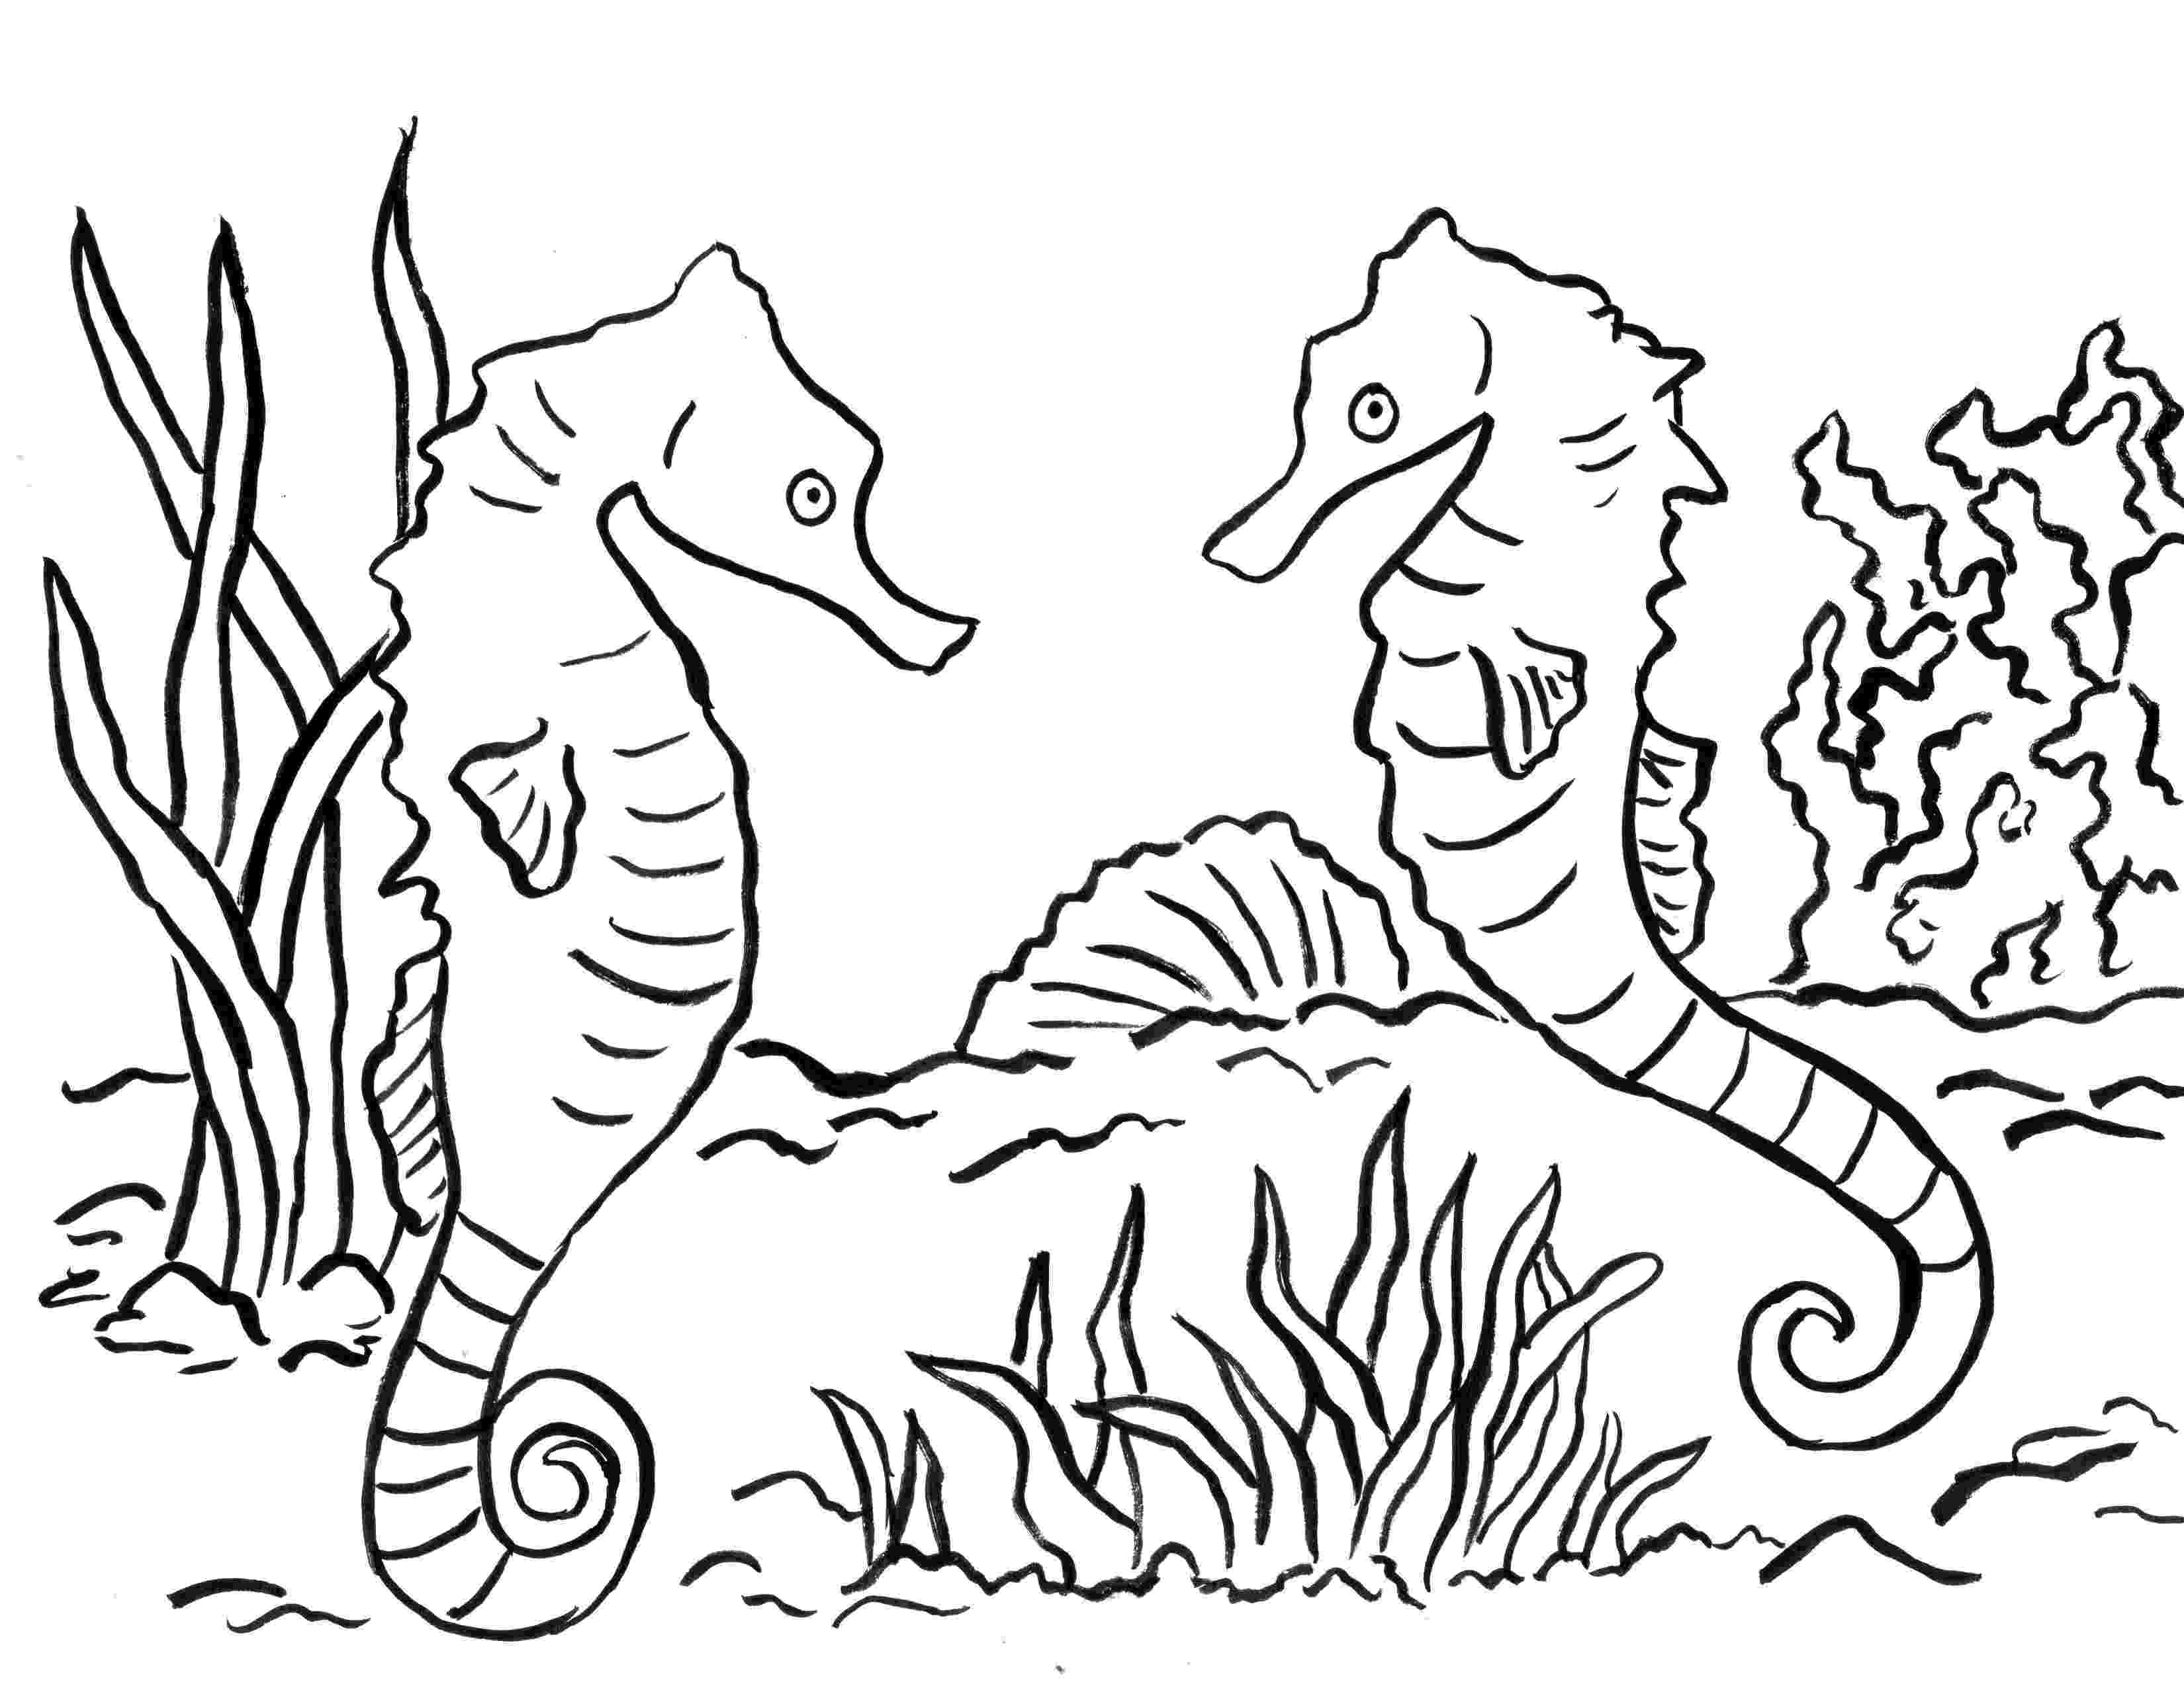 seahorses coloring pages seahorse coloring page samantha bell seahorses pages coloring